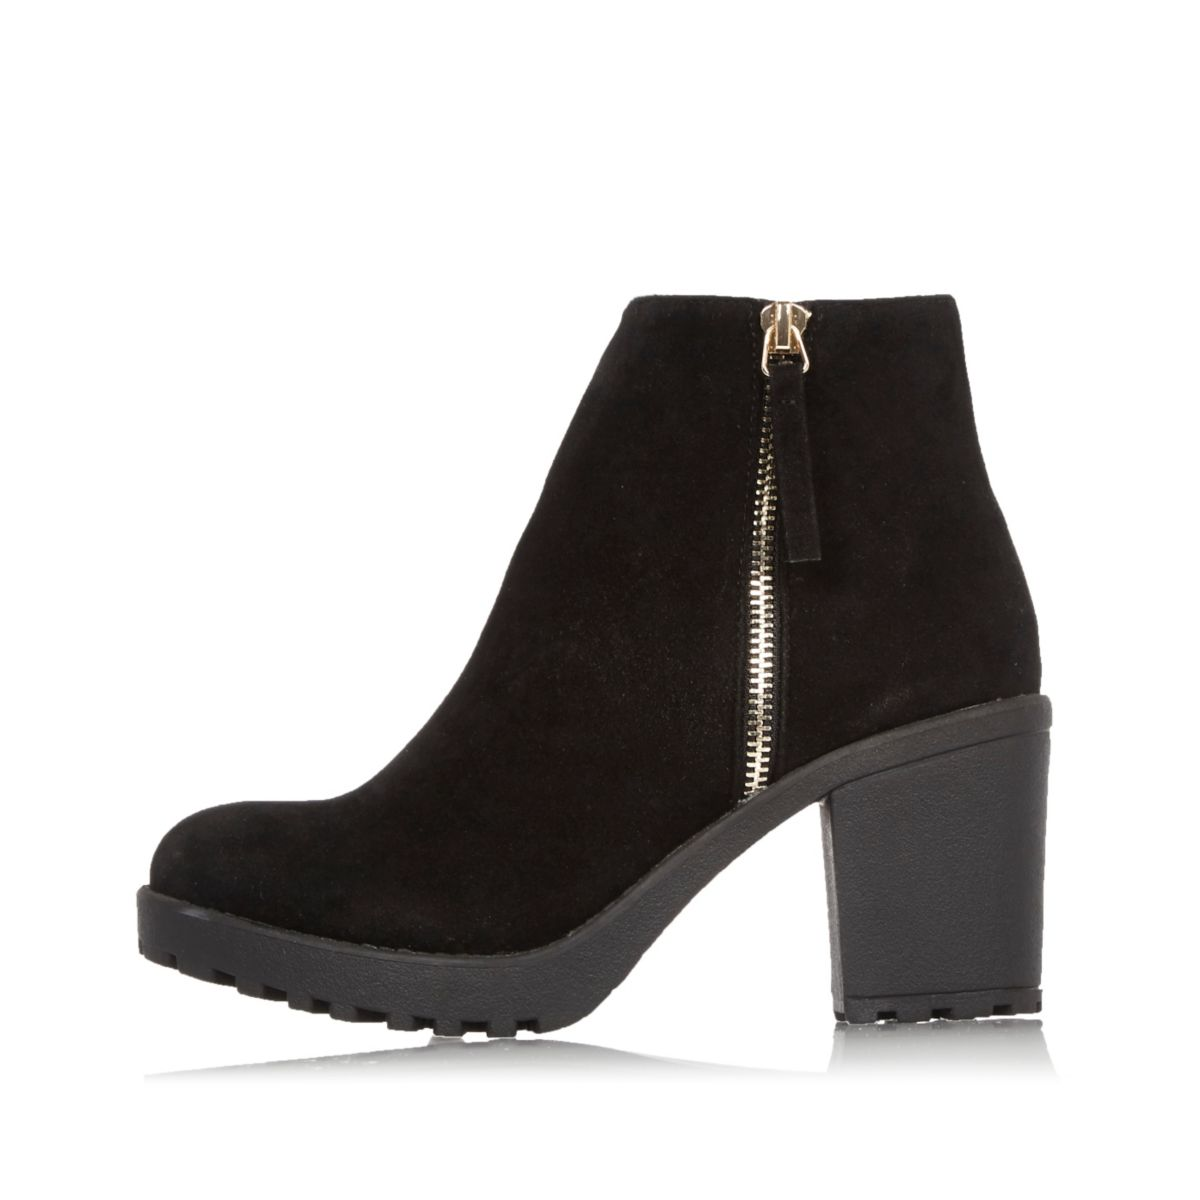 See the latest Steve Madden boots, shoes, handbags and accessories at Steve comfoisinsi.tk Save with Free Shipping & free in-store returns.